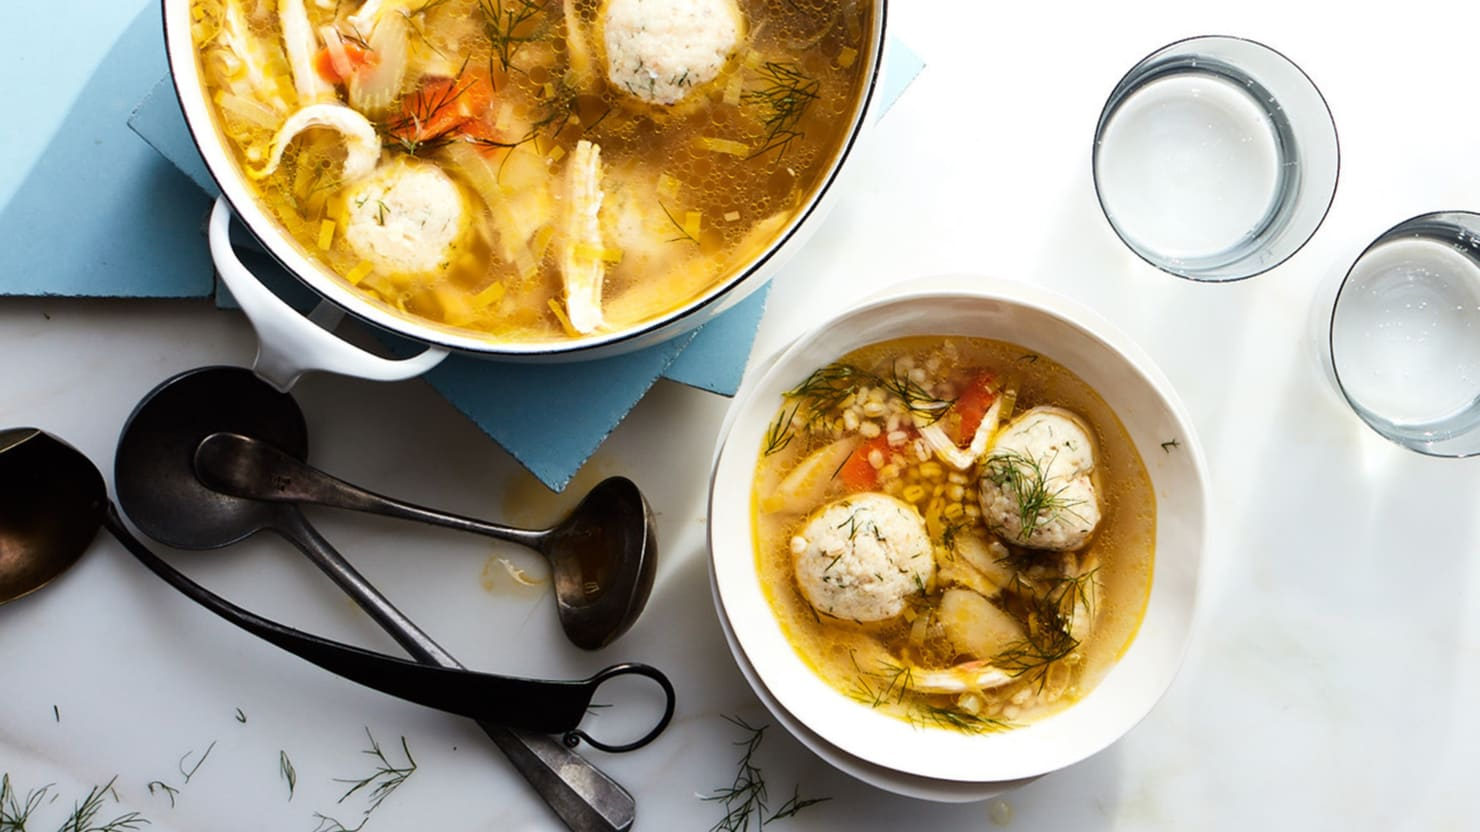 A Bowl of Gail Simmons' Matzo Ball Soup Will Cure What Ails You